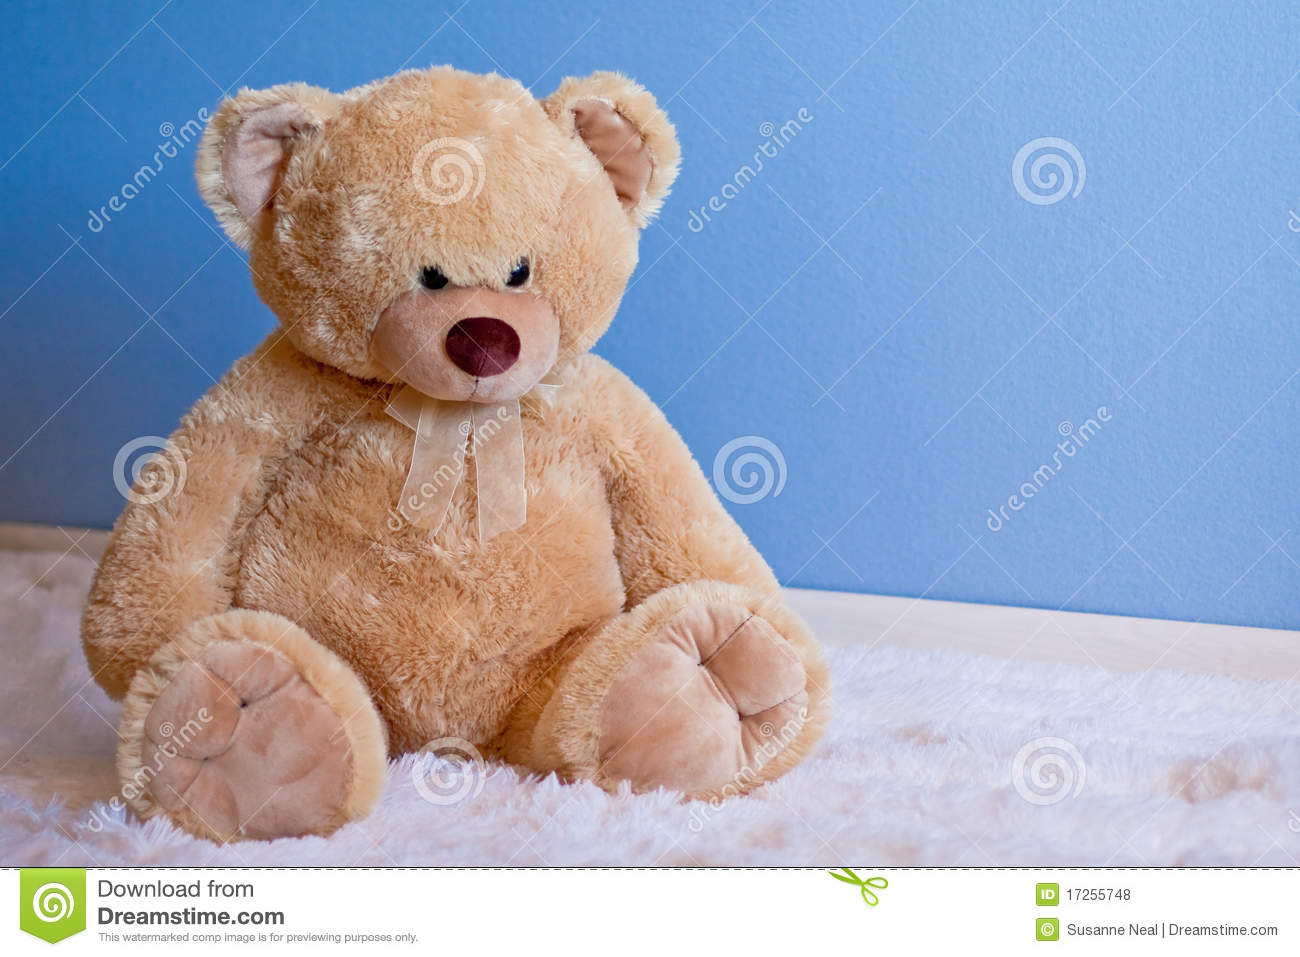 Big Fluffy Teddy Bear In Front Of Blue Wall Royalty Free